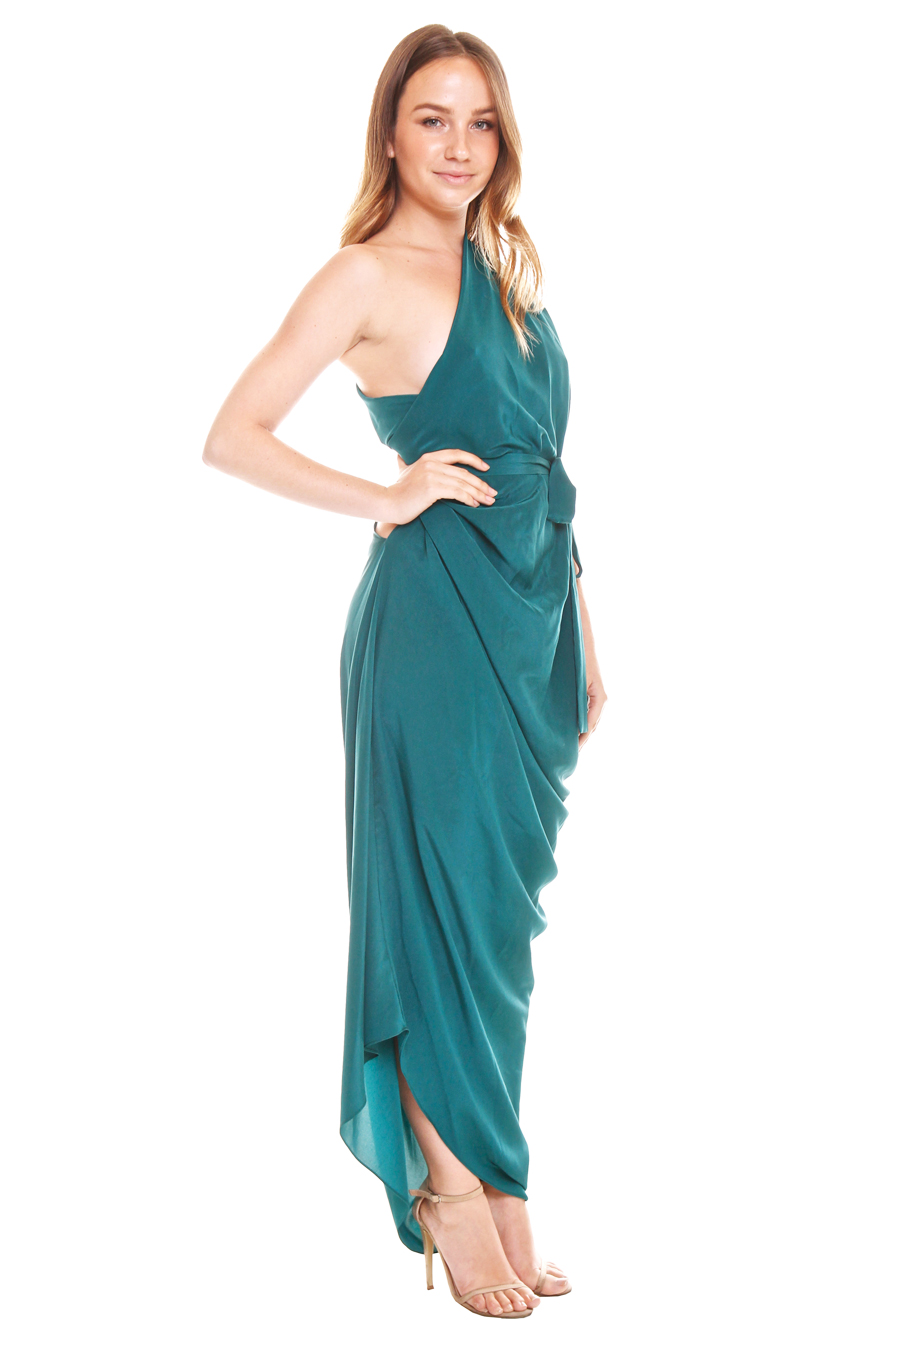 One Fell Swoop – Emerald - Perth Dress Hire - My Sisters Boudoir